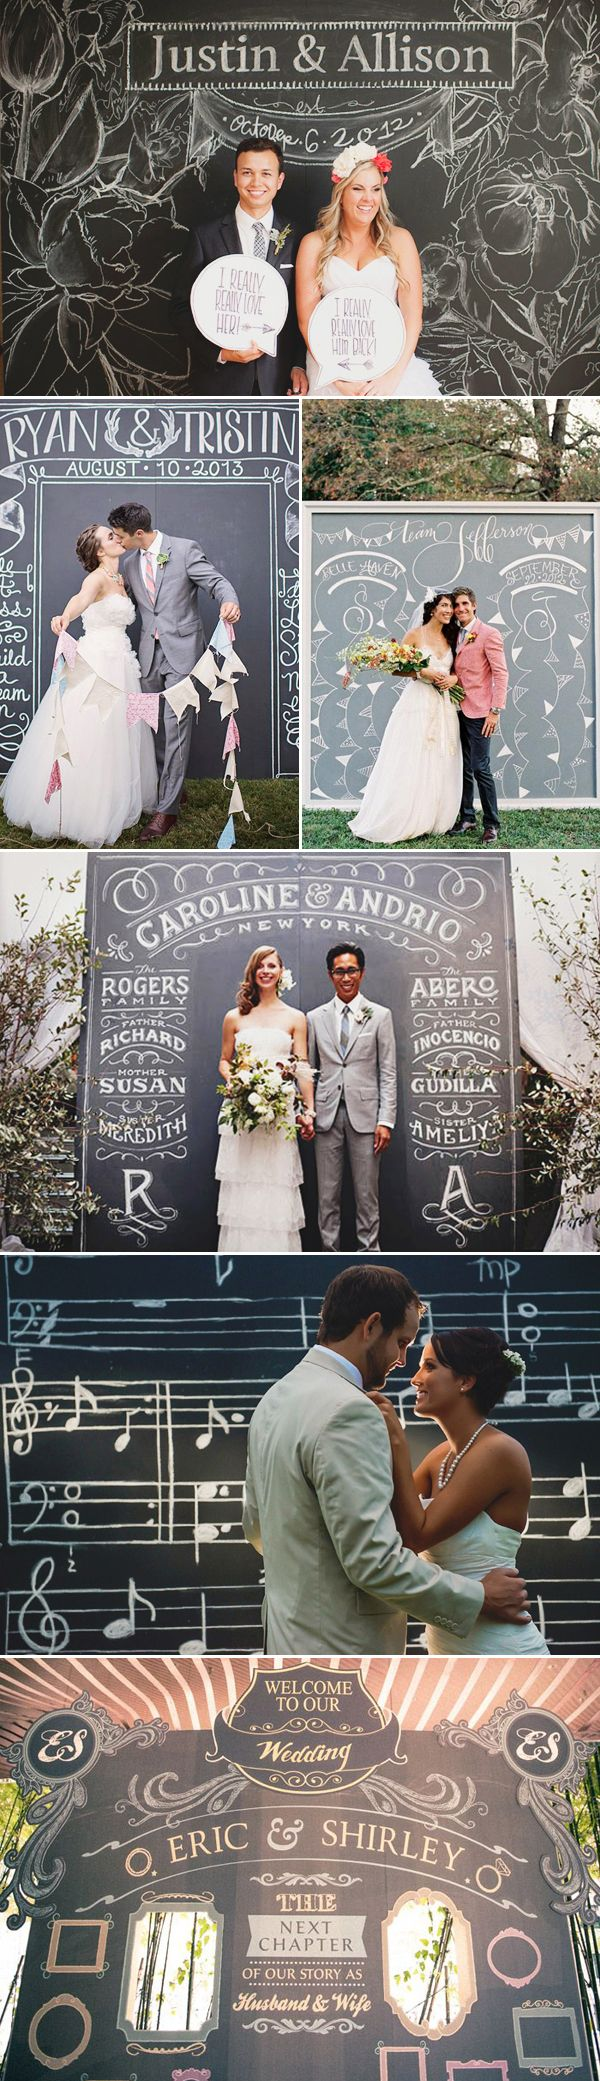 Oh Snap! 45 Creative Wedding Photo Backdrops - Guest DIY Chalk Backdrop!